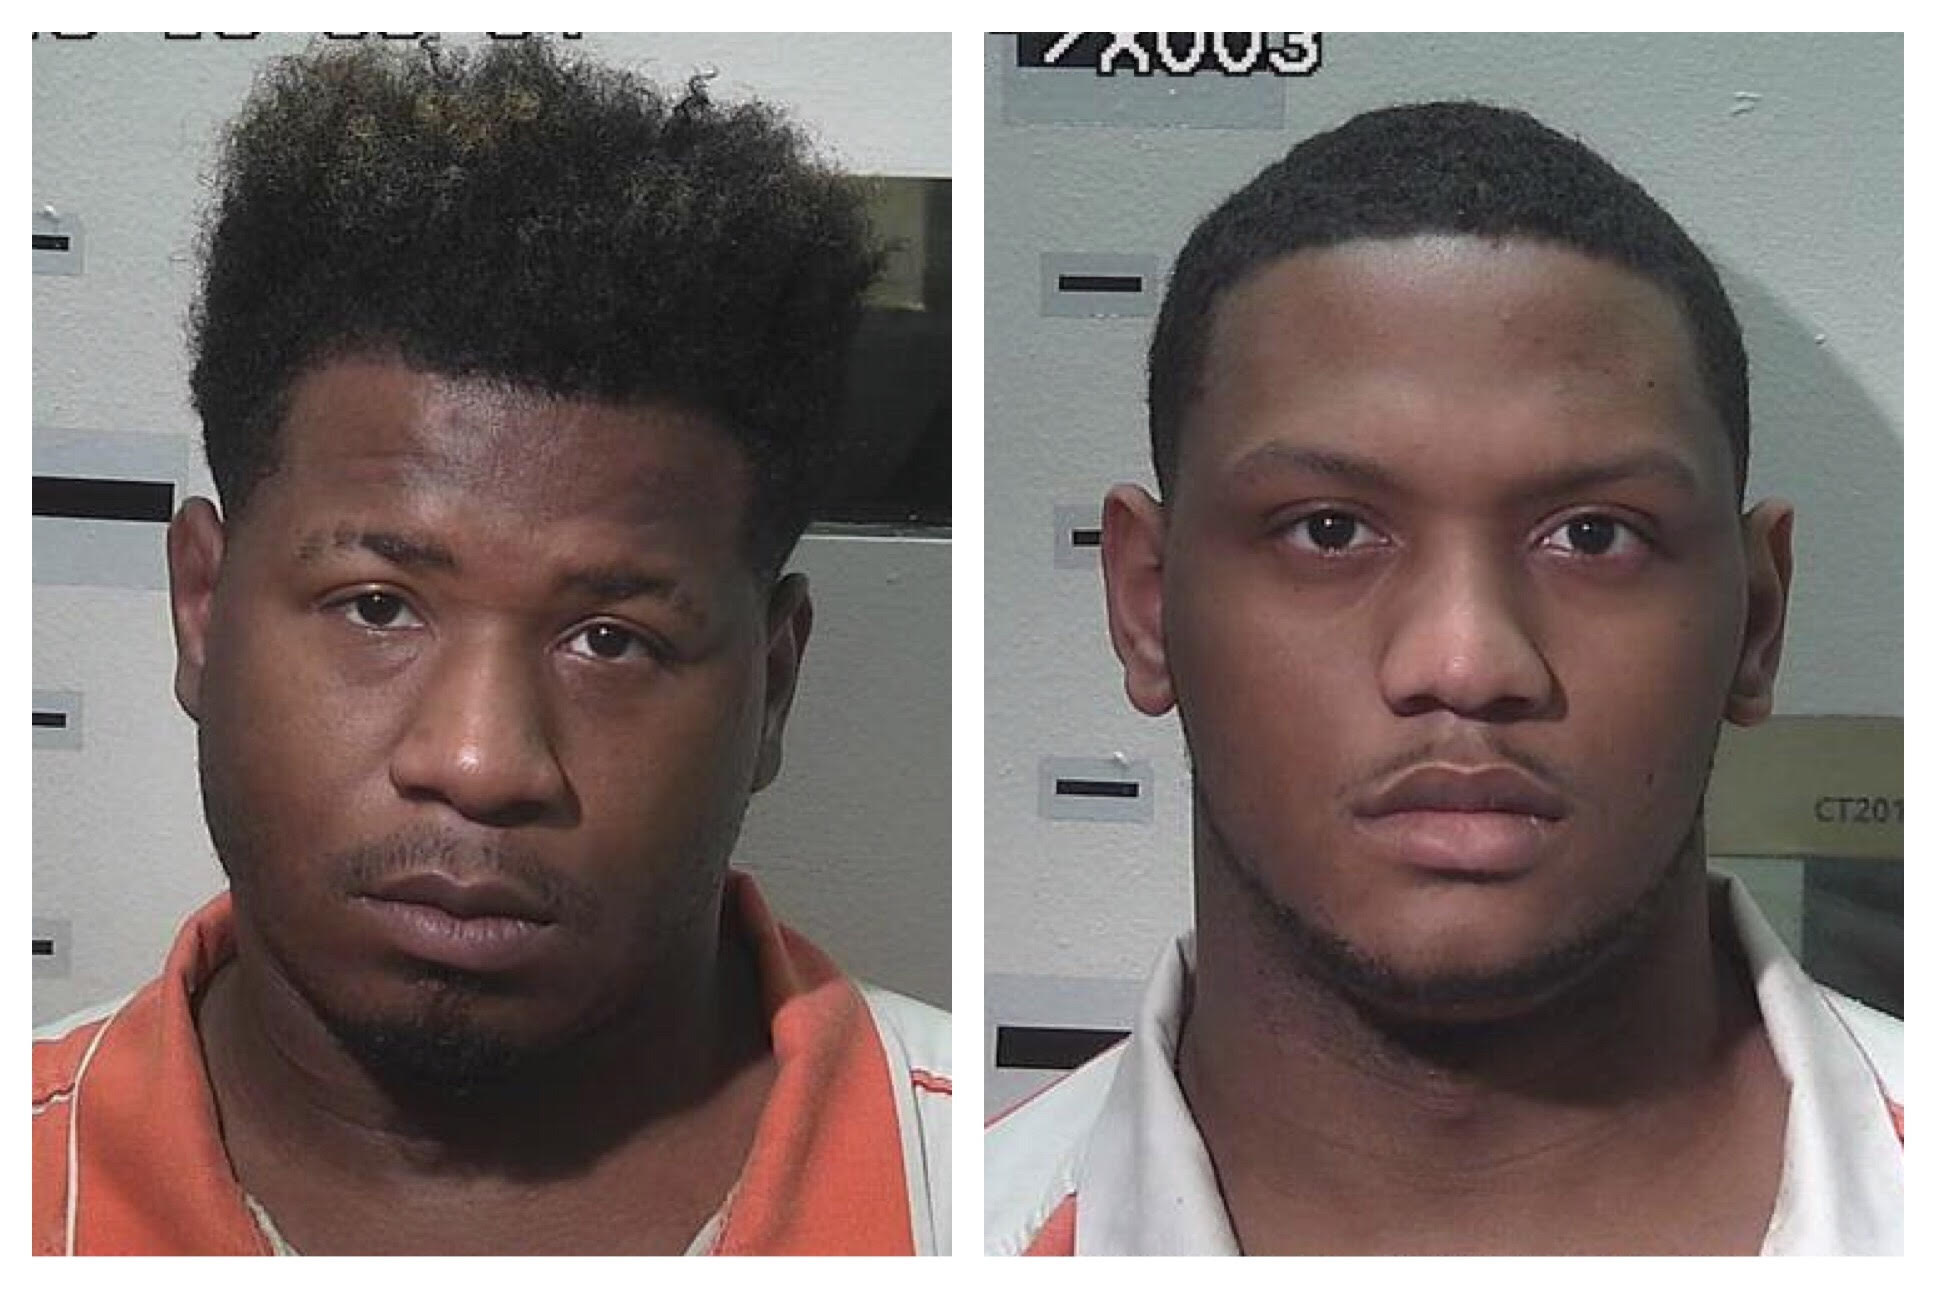 Two individuals arrested on multiple charges after allegedly speeding thru School Zone in Ramsey